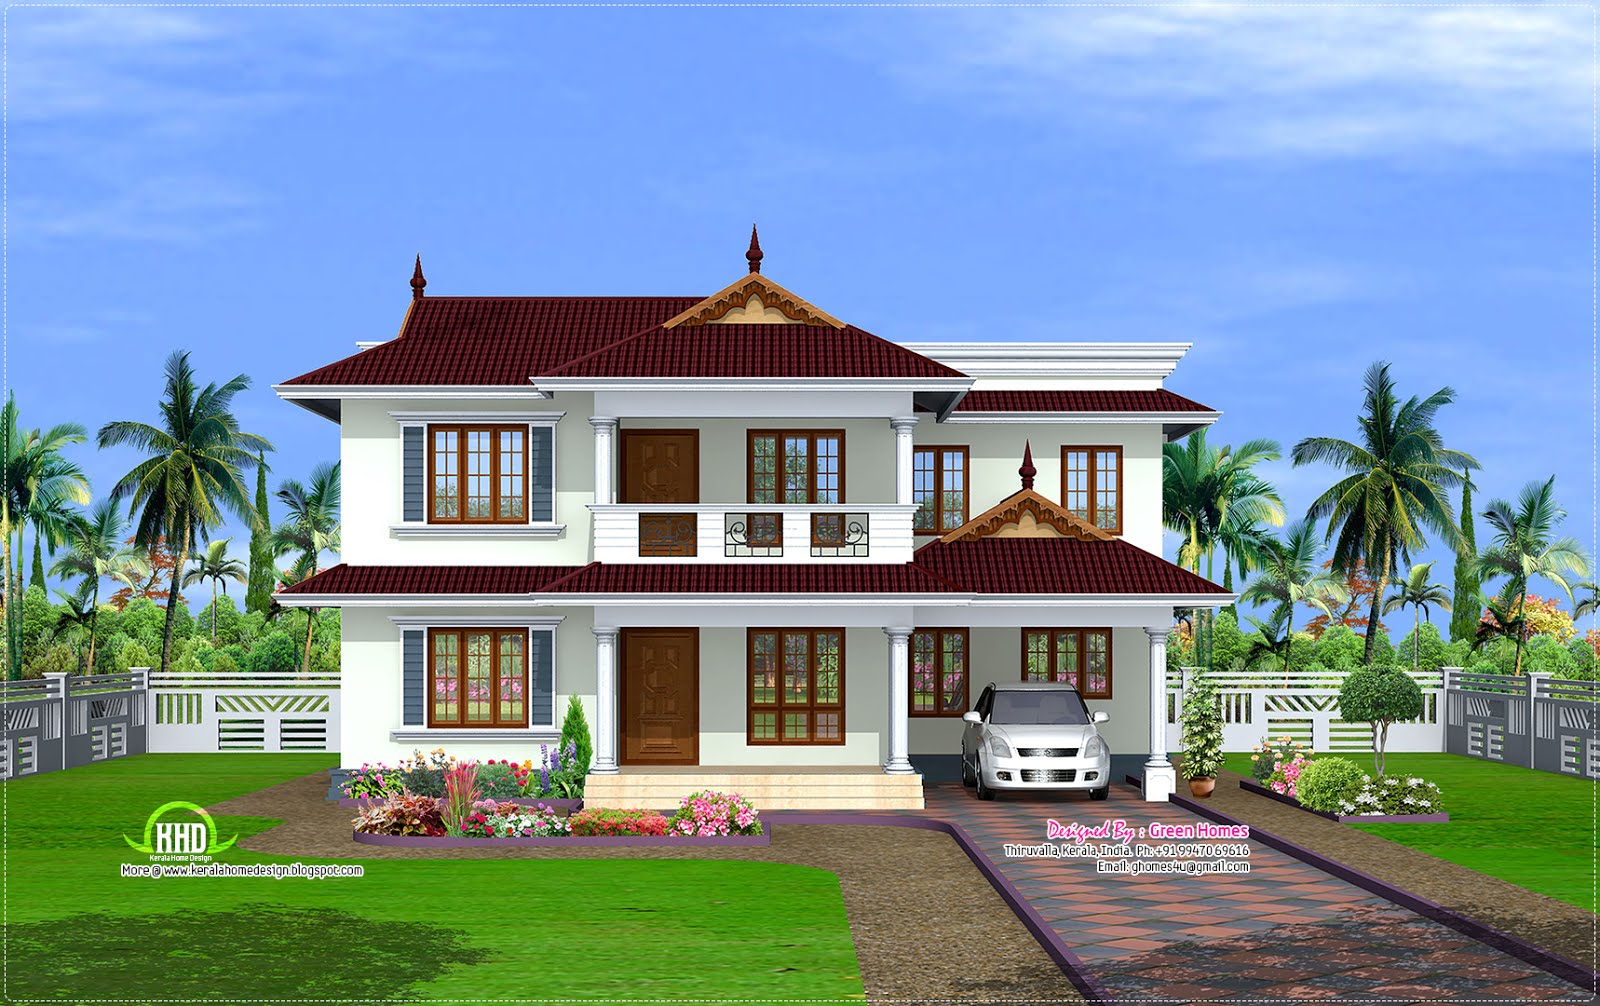 2600 kerala model house kerala home design and floor plans - Kerala exterior model homes ...